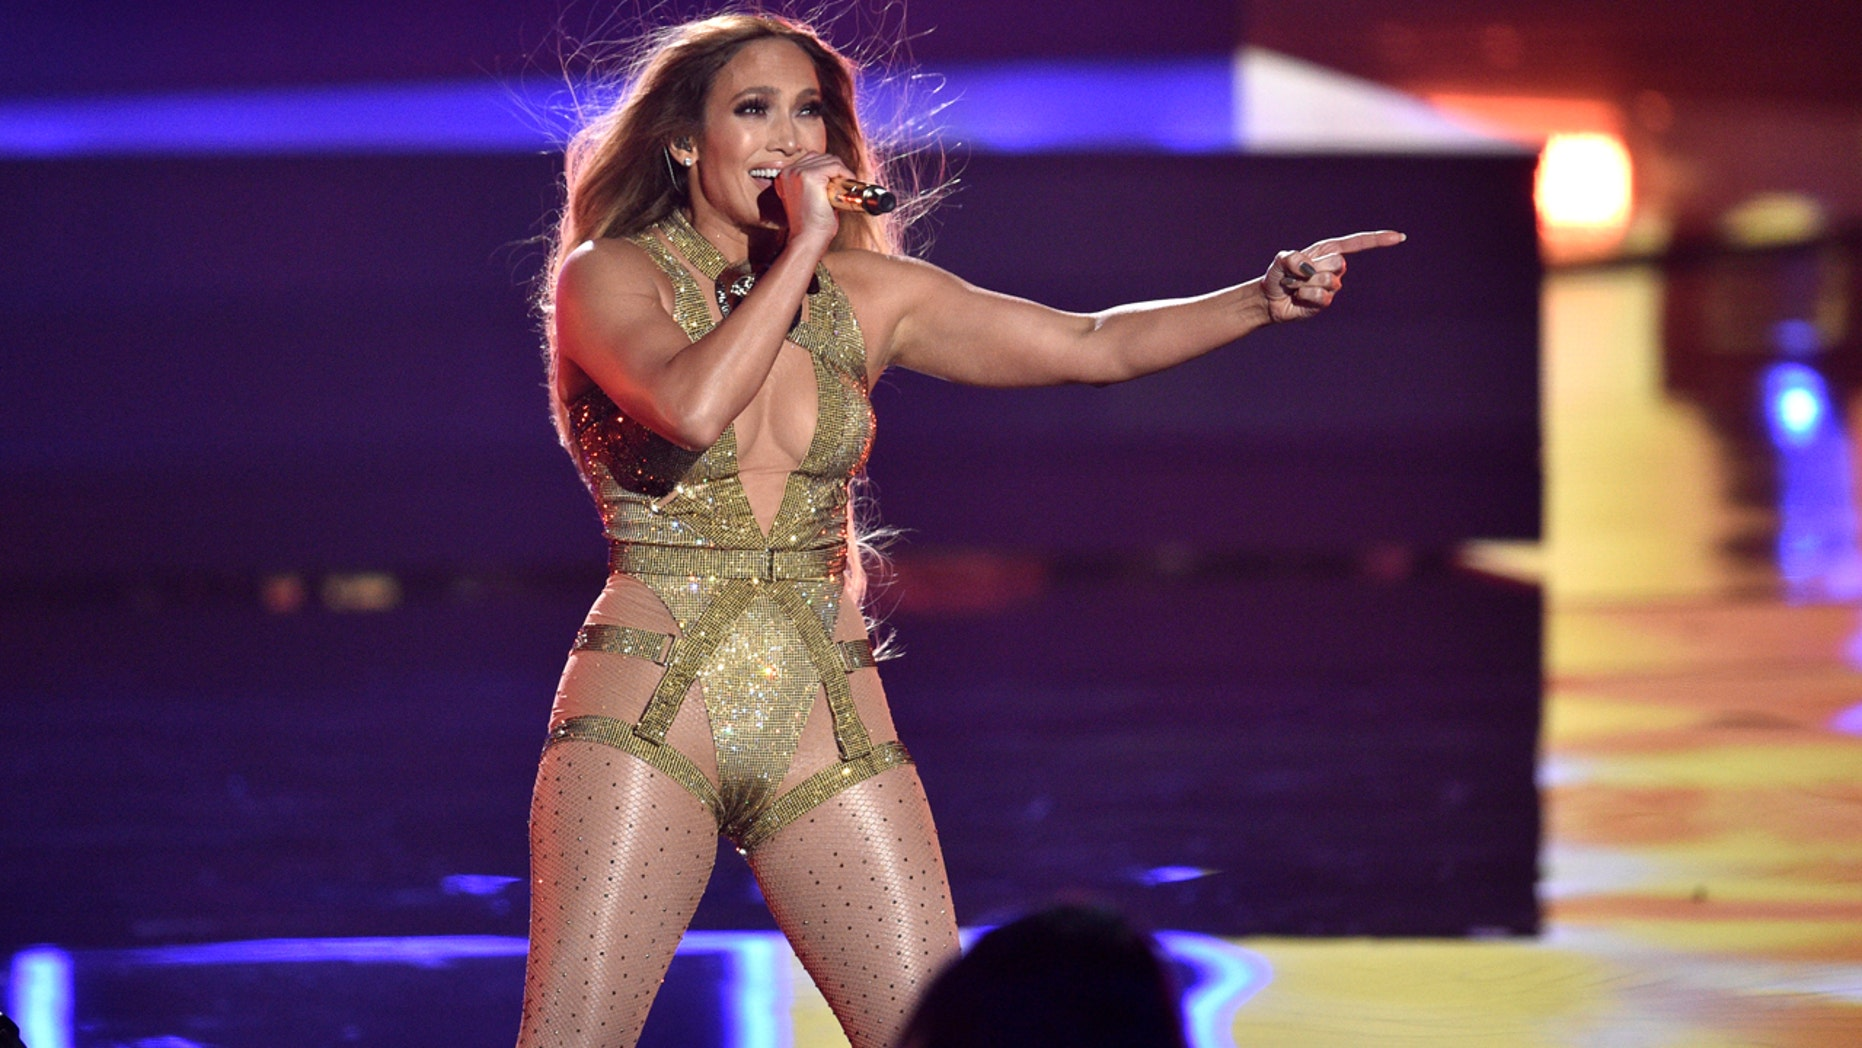 Video Vanguard award winner Jennifer Lopez performs at the MTV Video Music Awards at Radio City Music Hall on Monday, Aug. 20, 2018, in New York. (Photo by Chris Pizzello/Invision/AP)